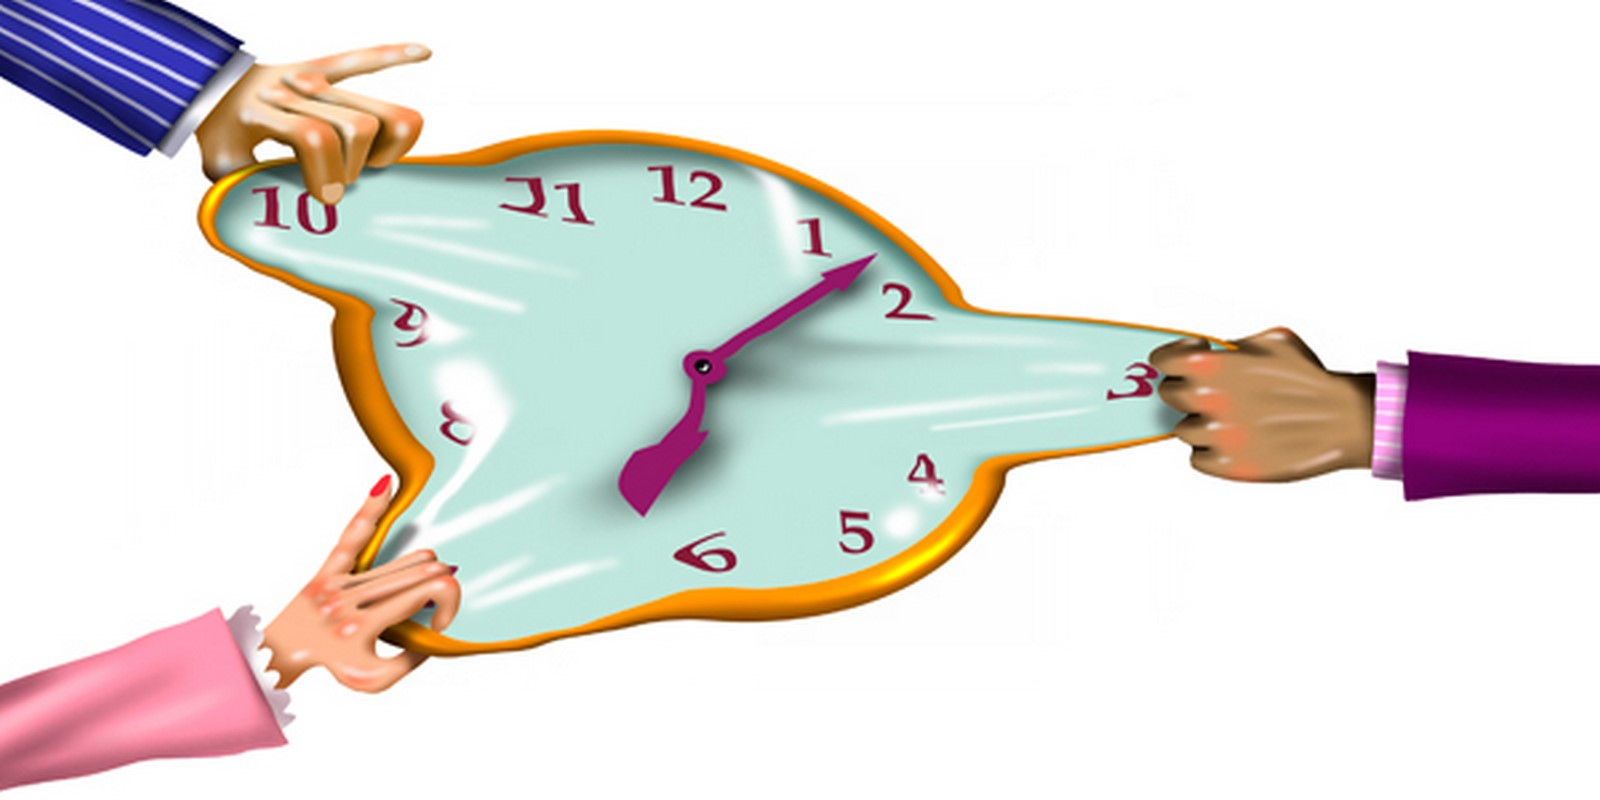 The irony behind late working hours in professional practice - Sheet2